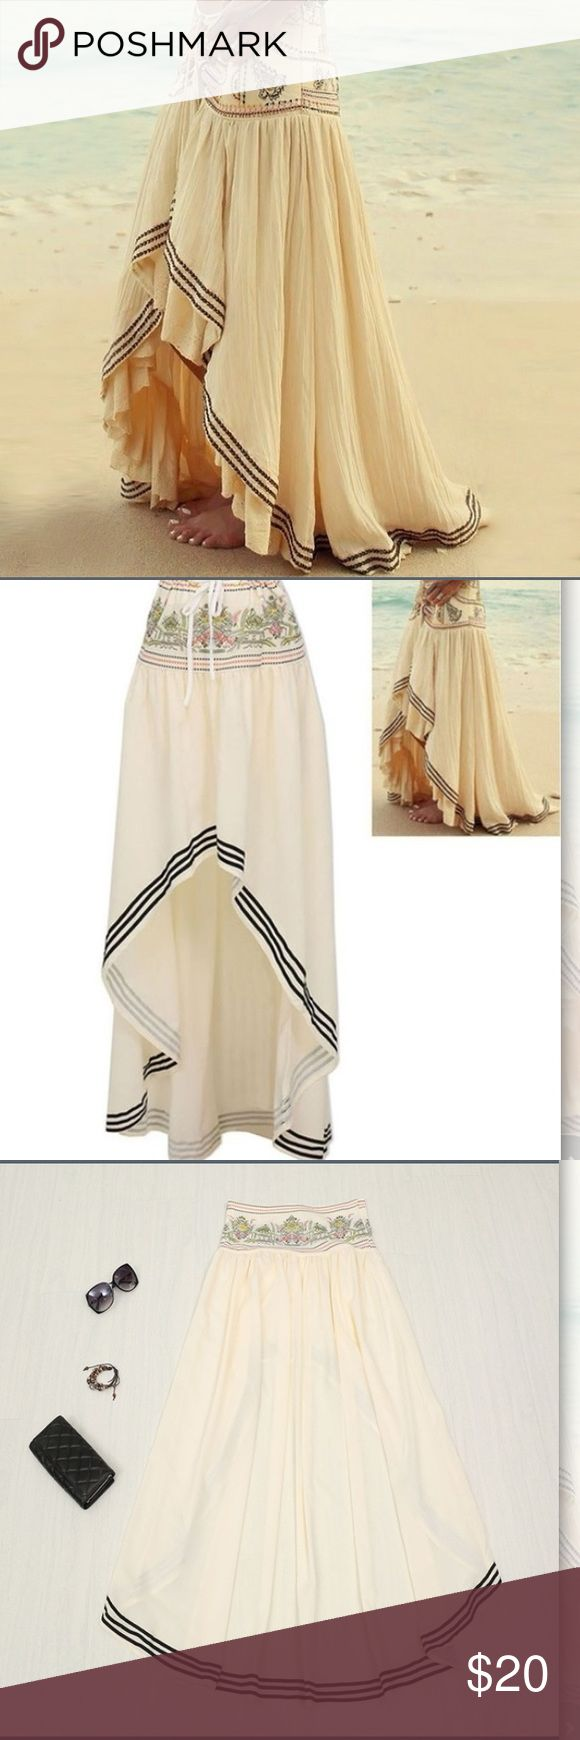 High low skirt 😘 Cute high-low skirt! Great for the beach or fun summer outfit. Smoke free home :) Skirts High Low